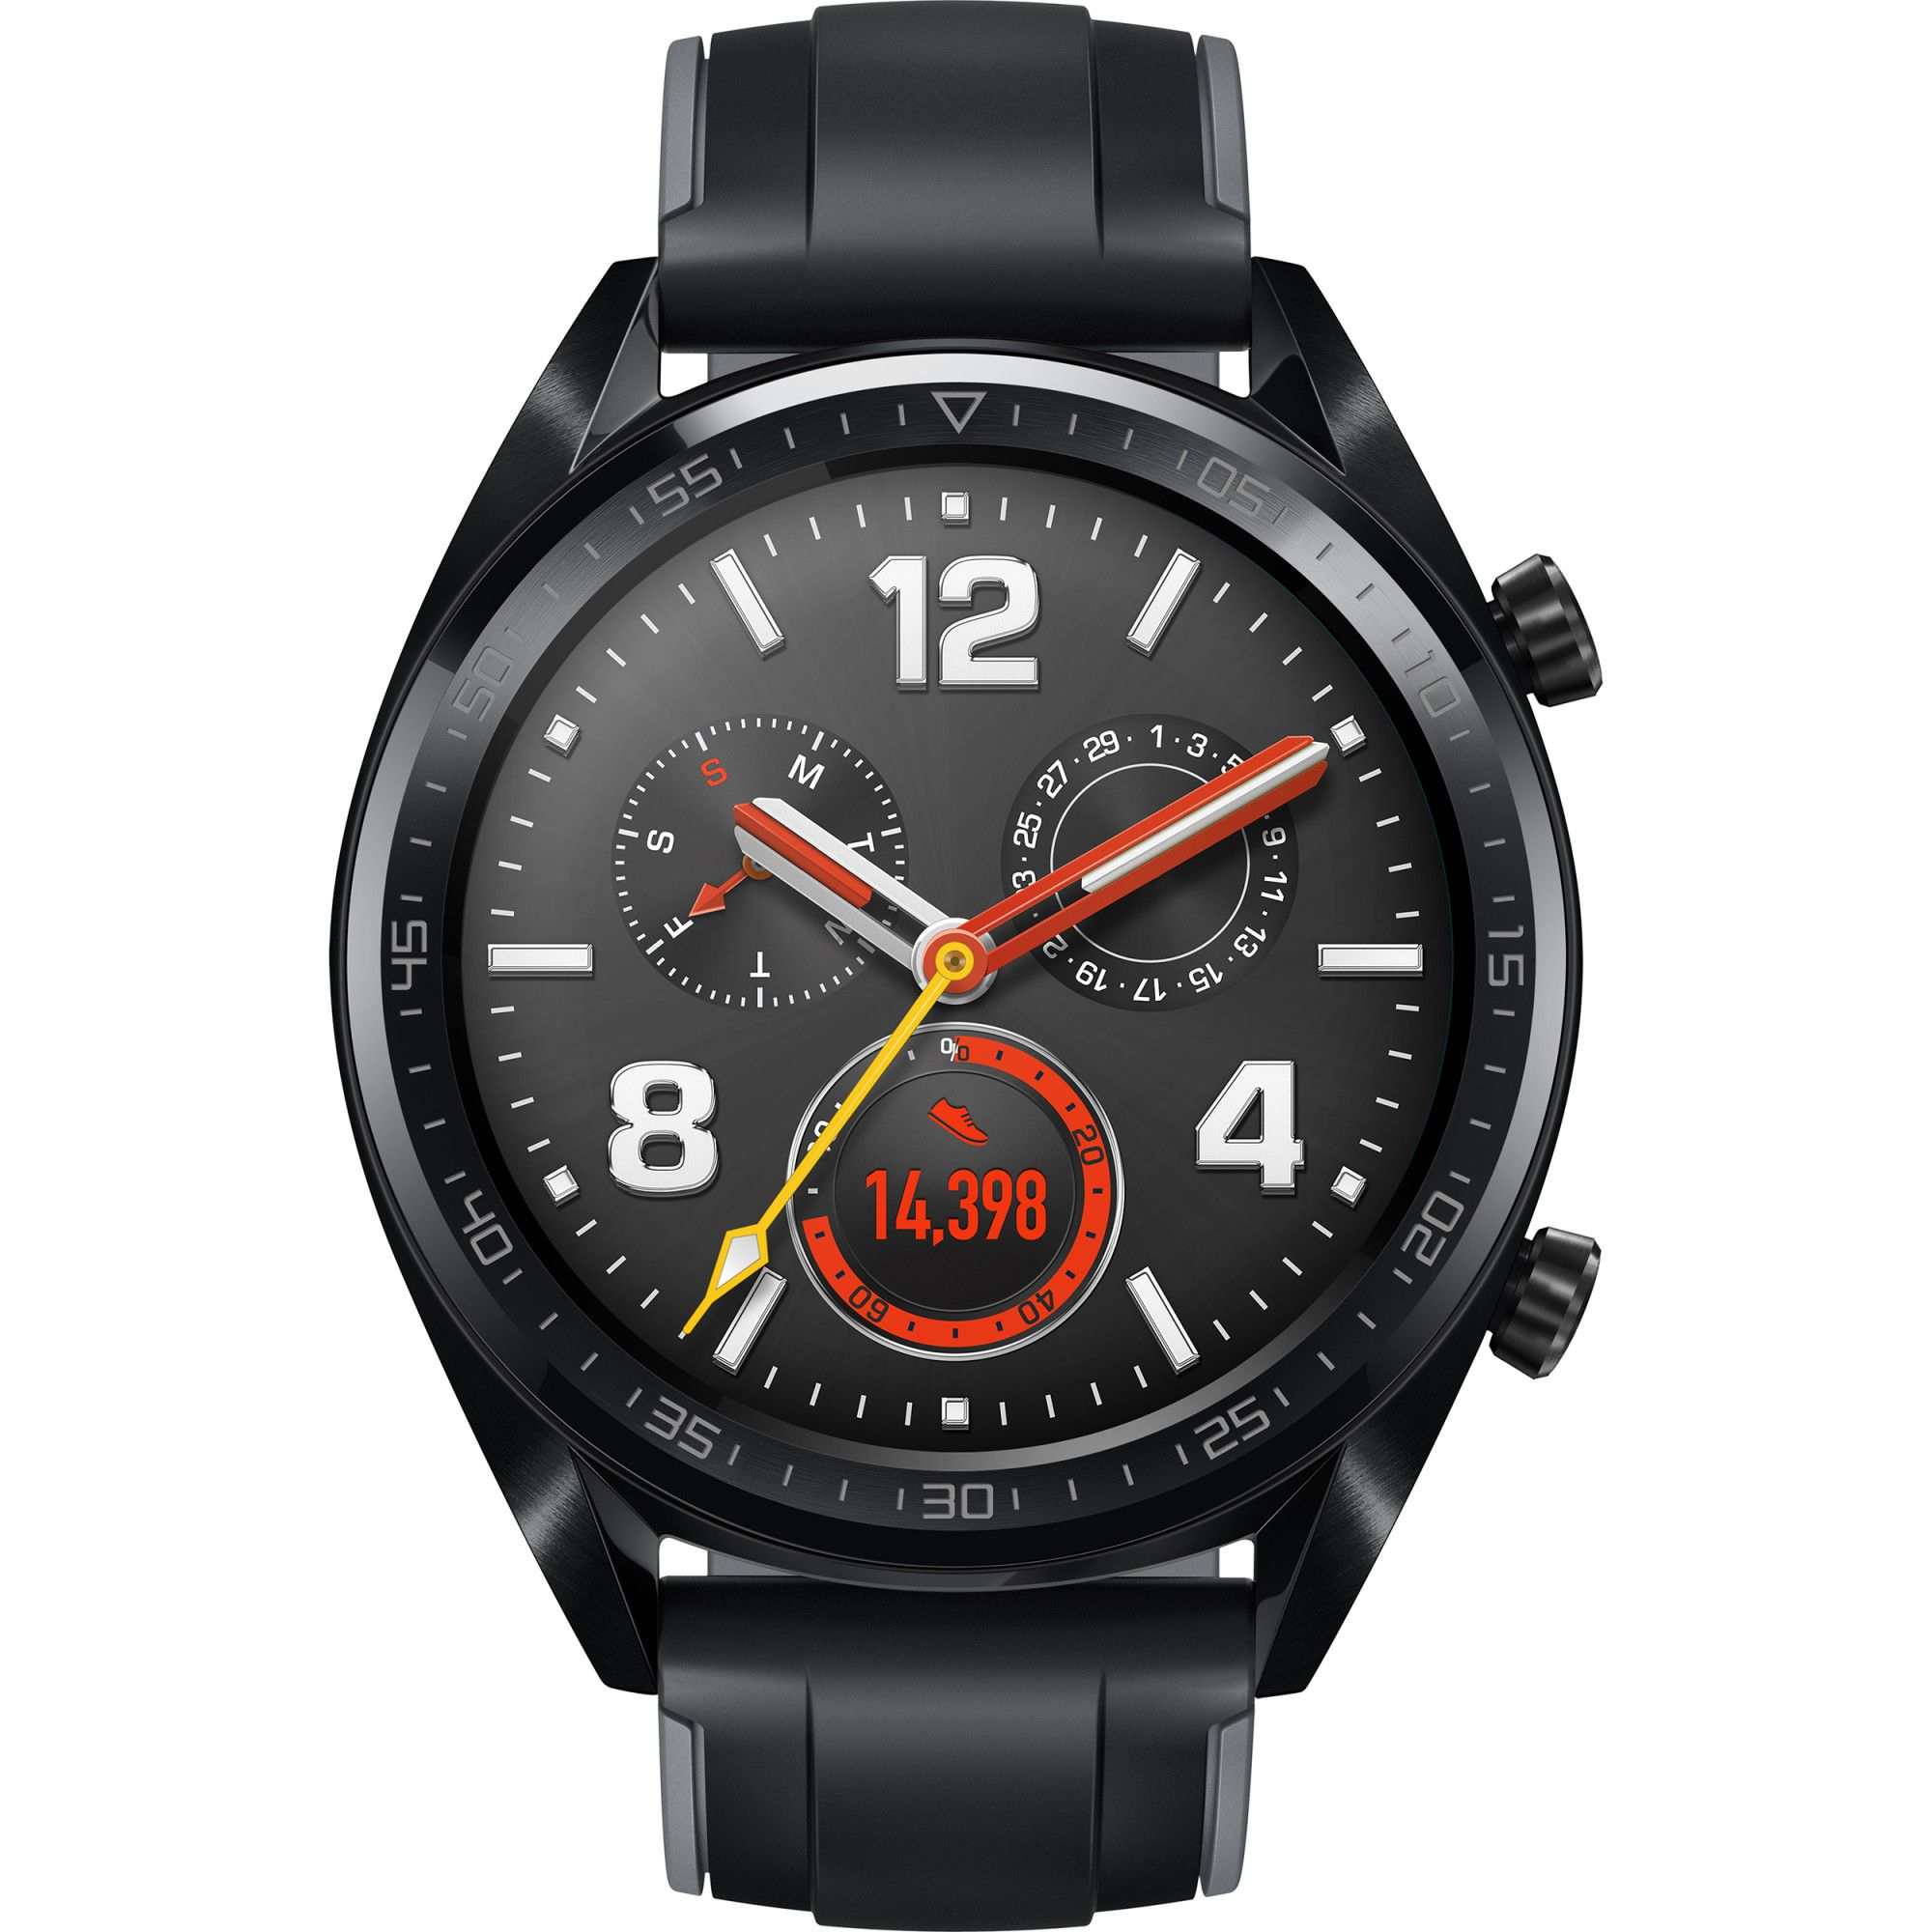 Huawei Watch GT smartwatch Black AMOLED 3.53 cm (1.39